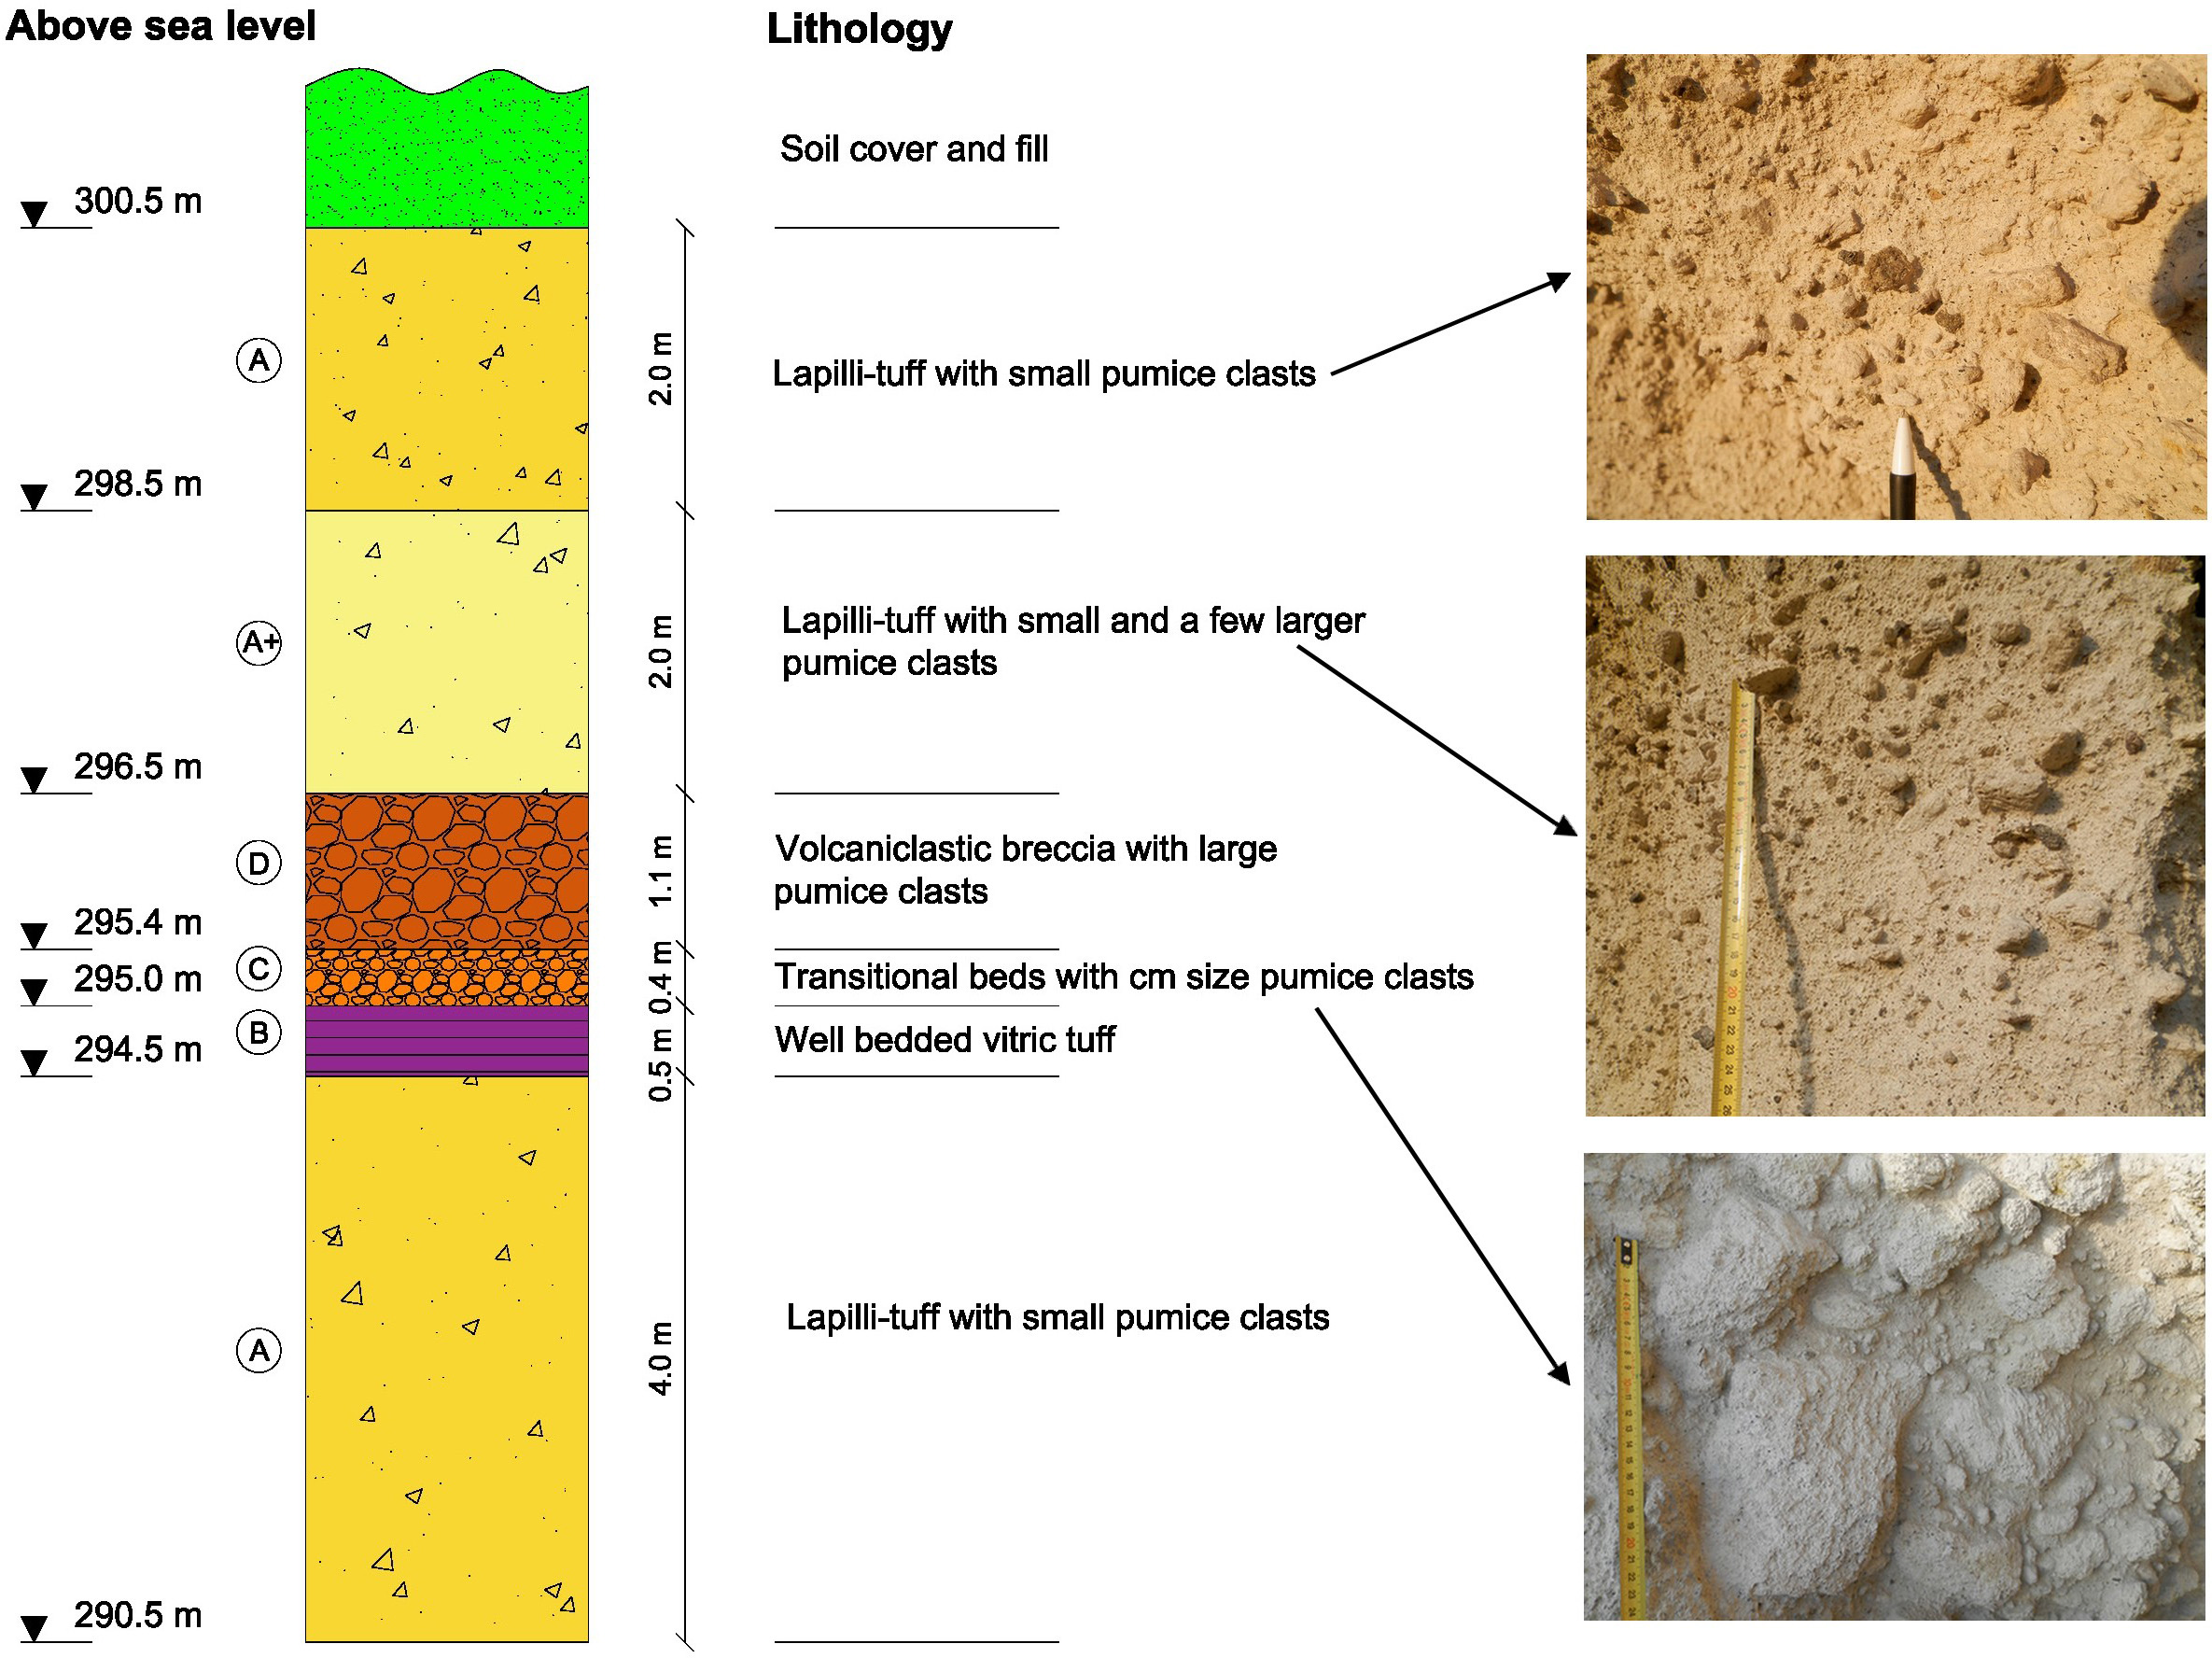 NHESS - Slope stability and rockfall assessment of volcanic